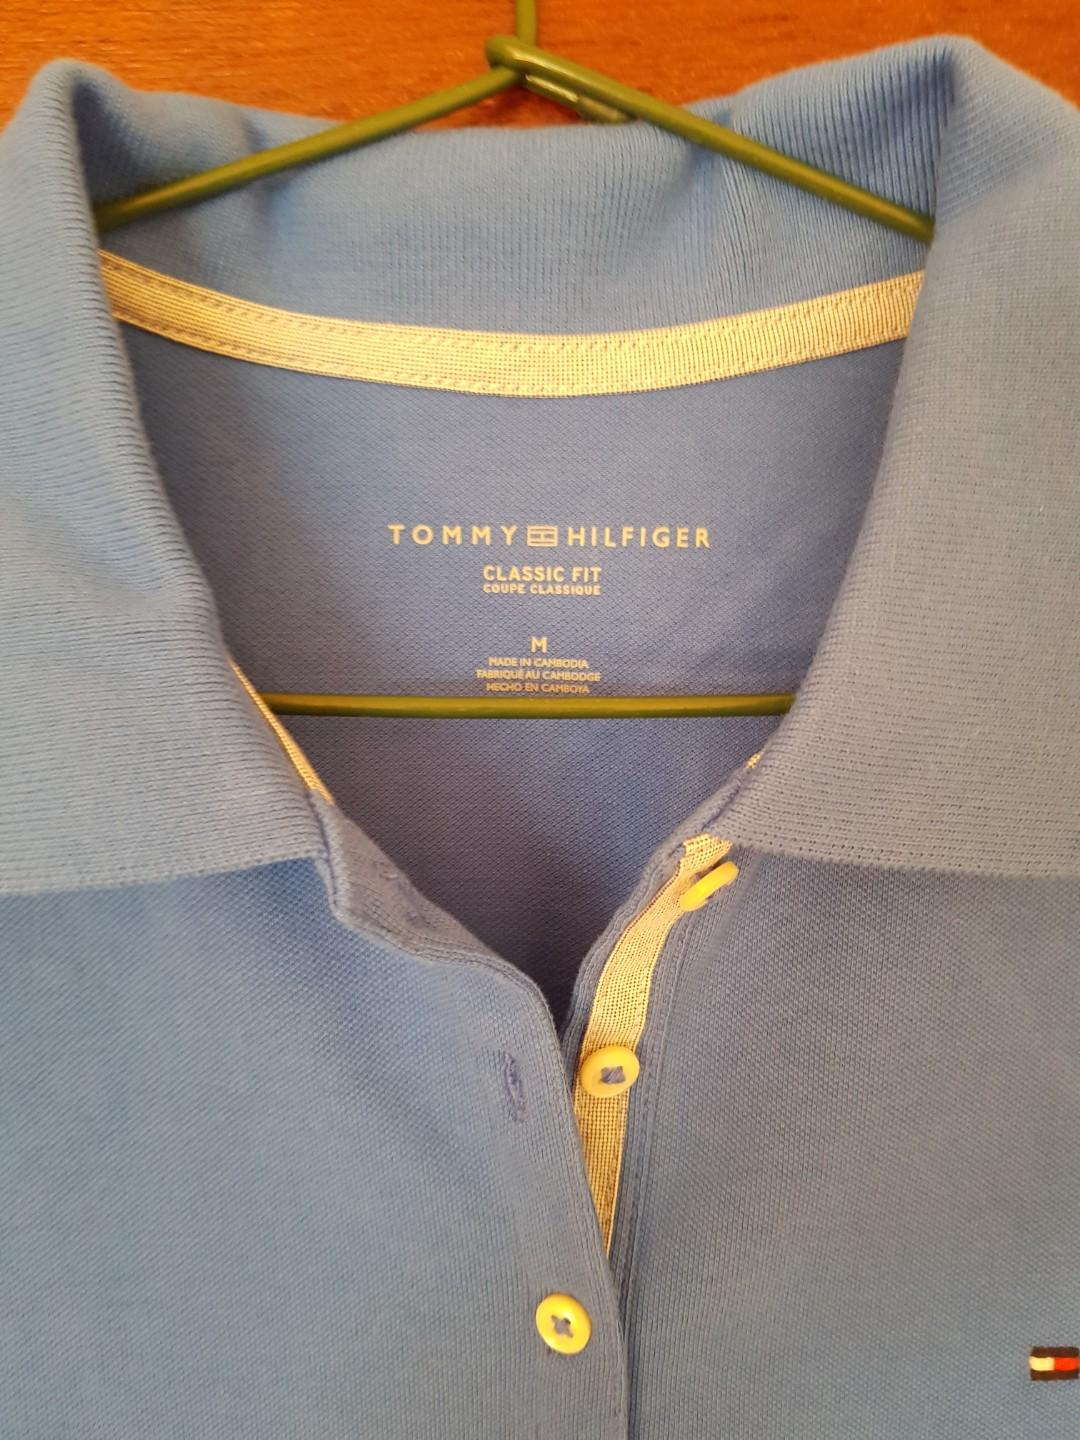 Tommy Hilfiger ladies Polo